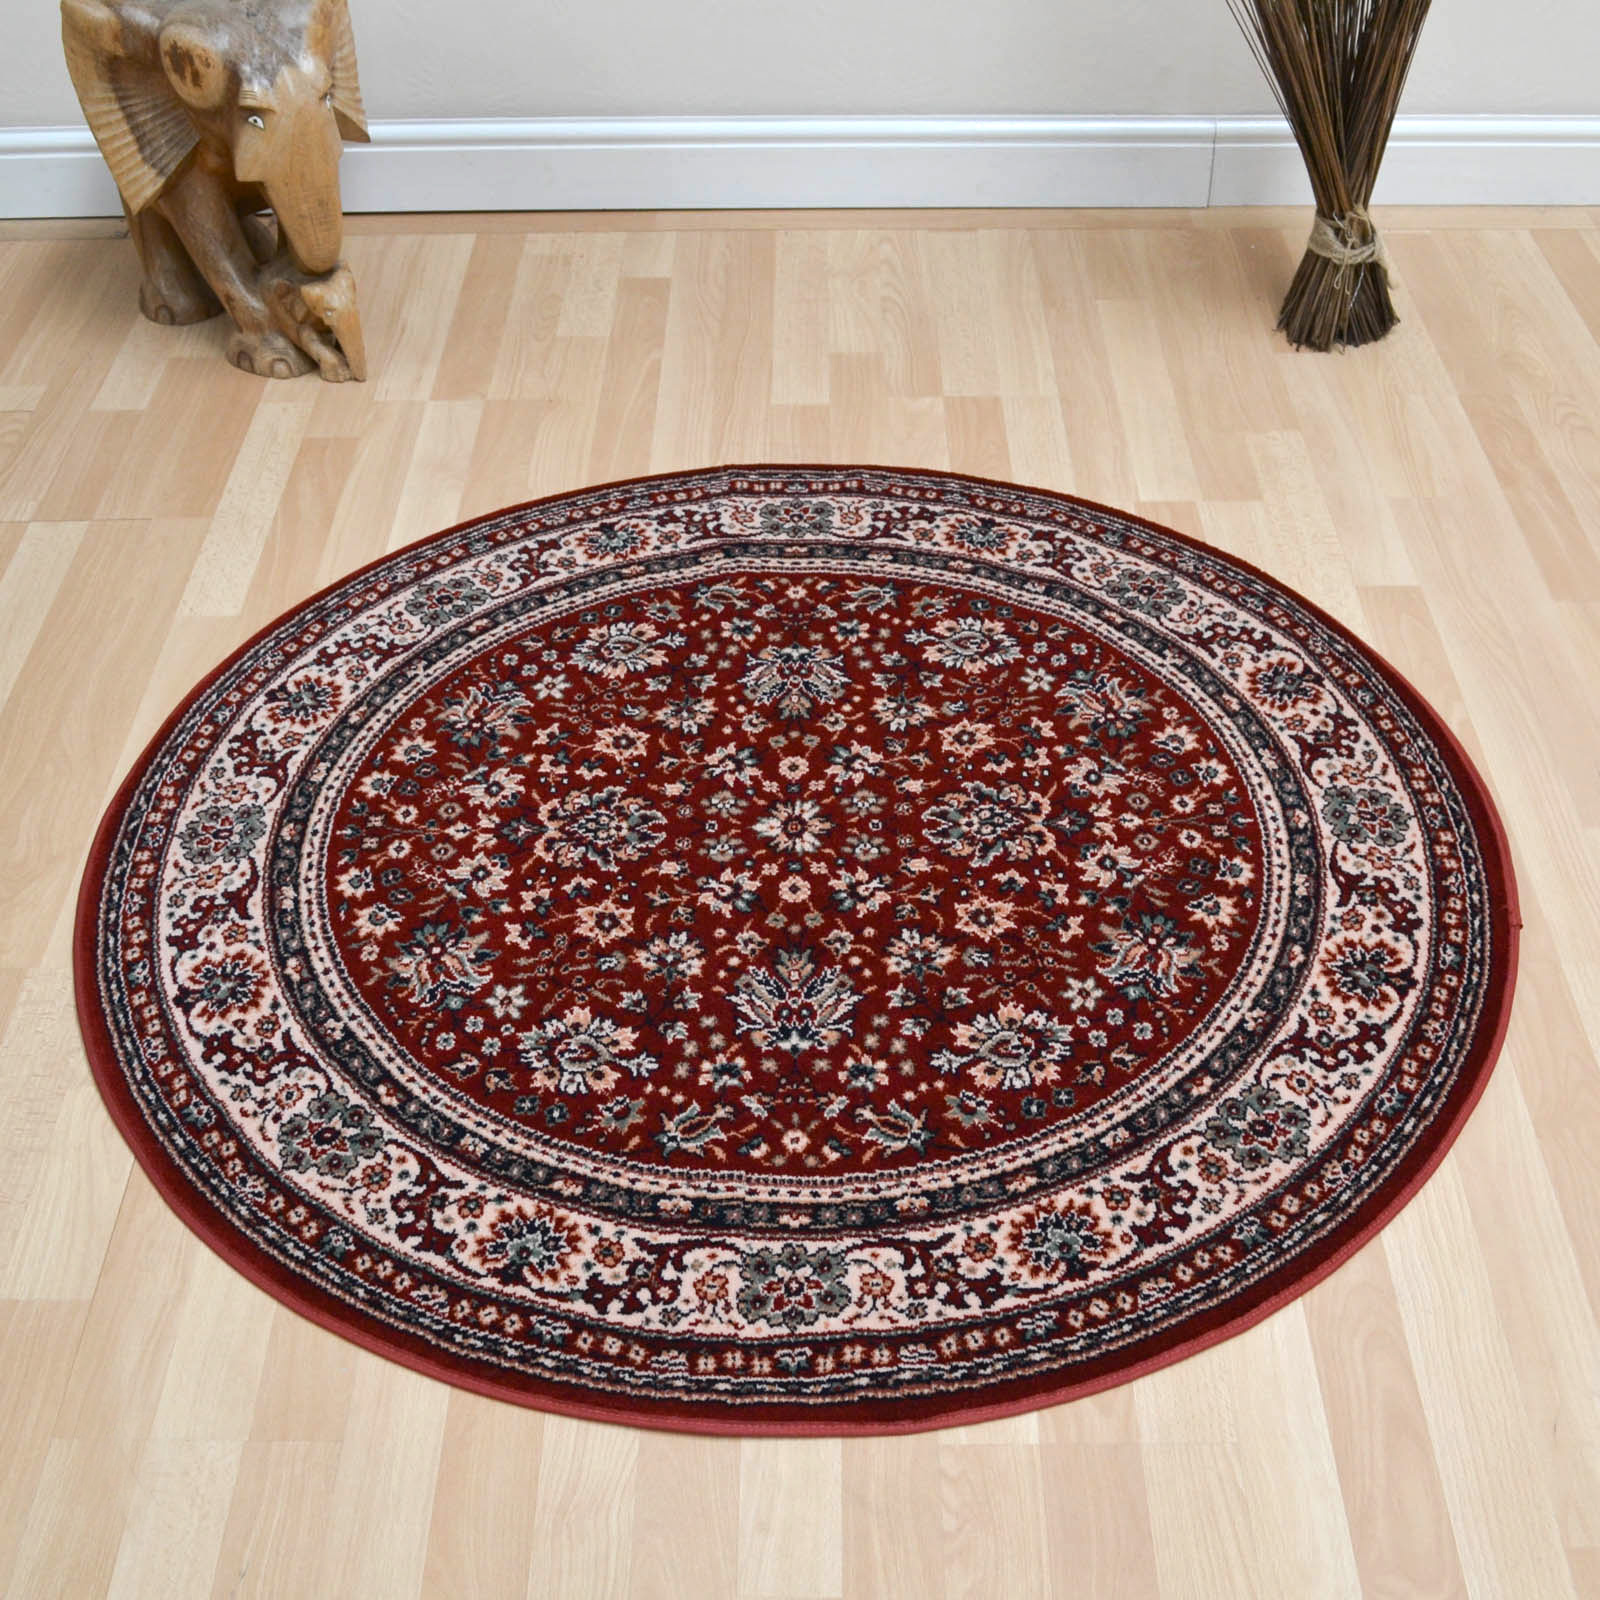 Lano Royal Circular Rugs 1570 507 Red